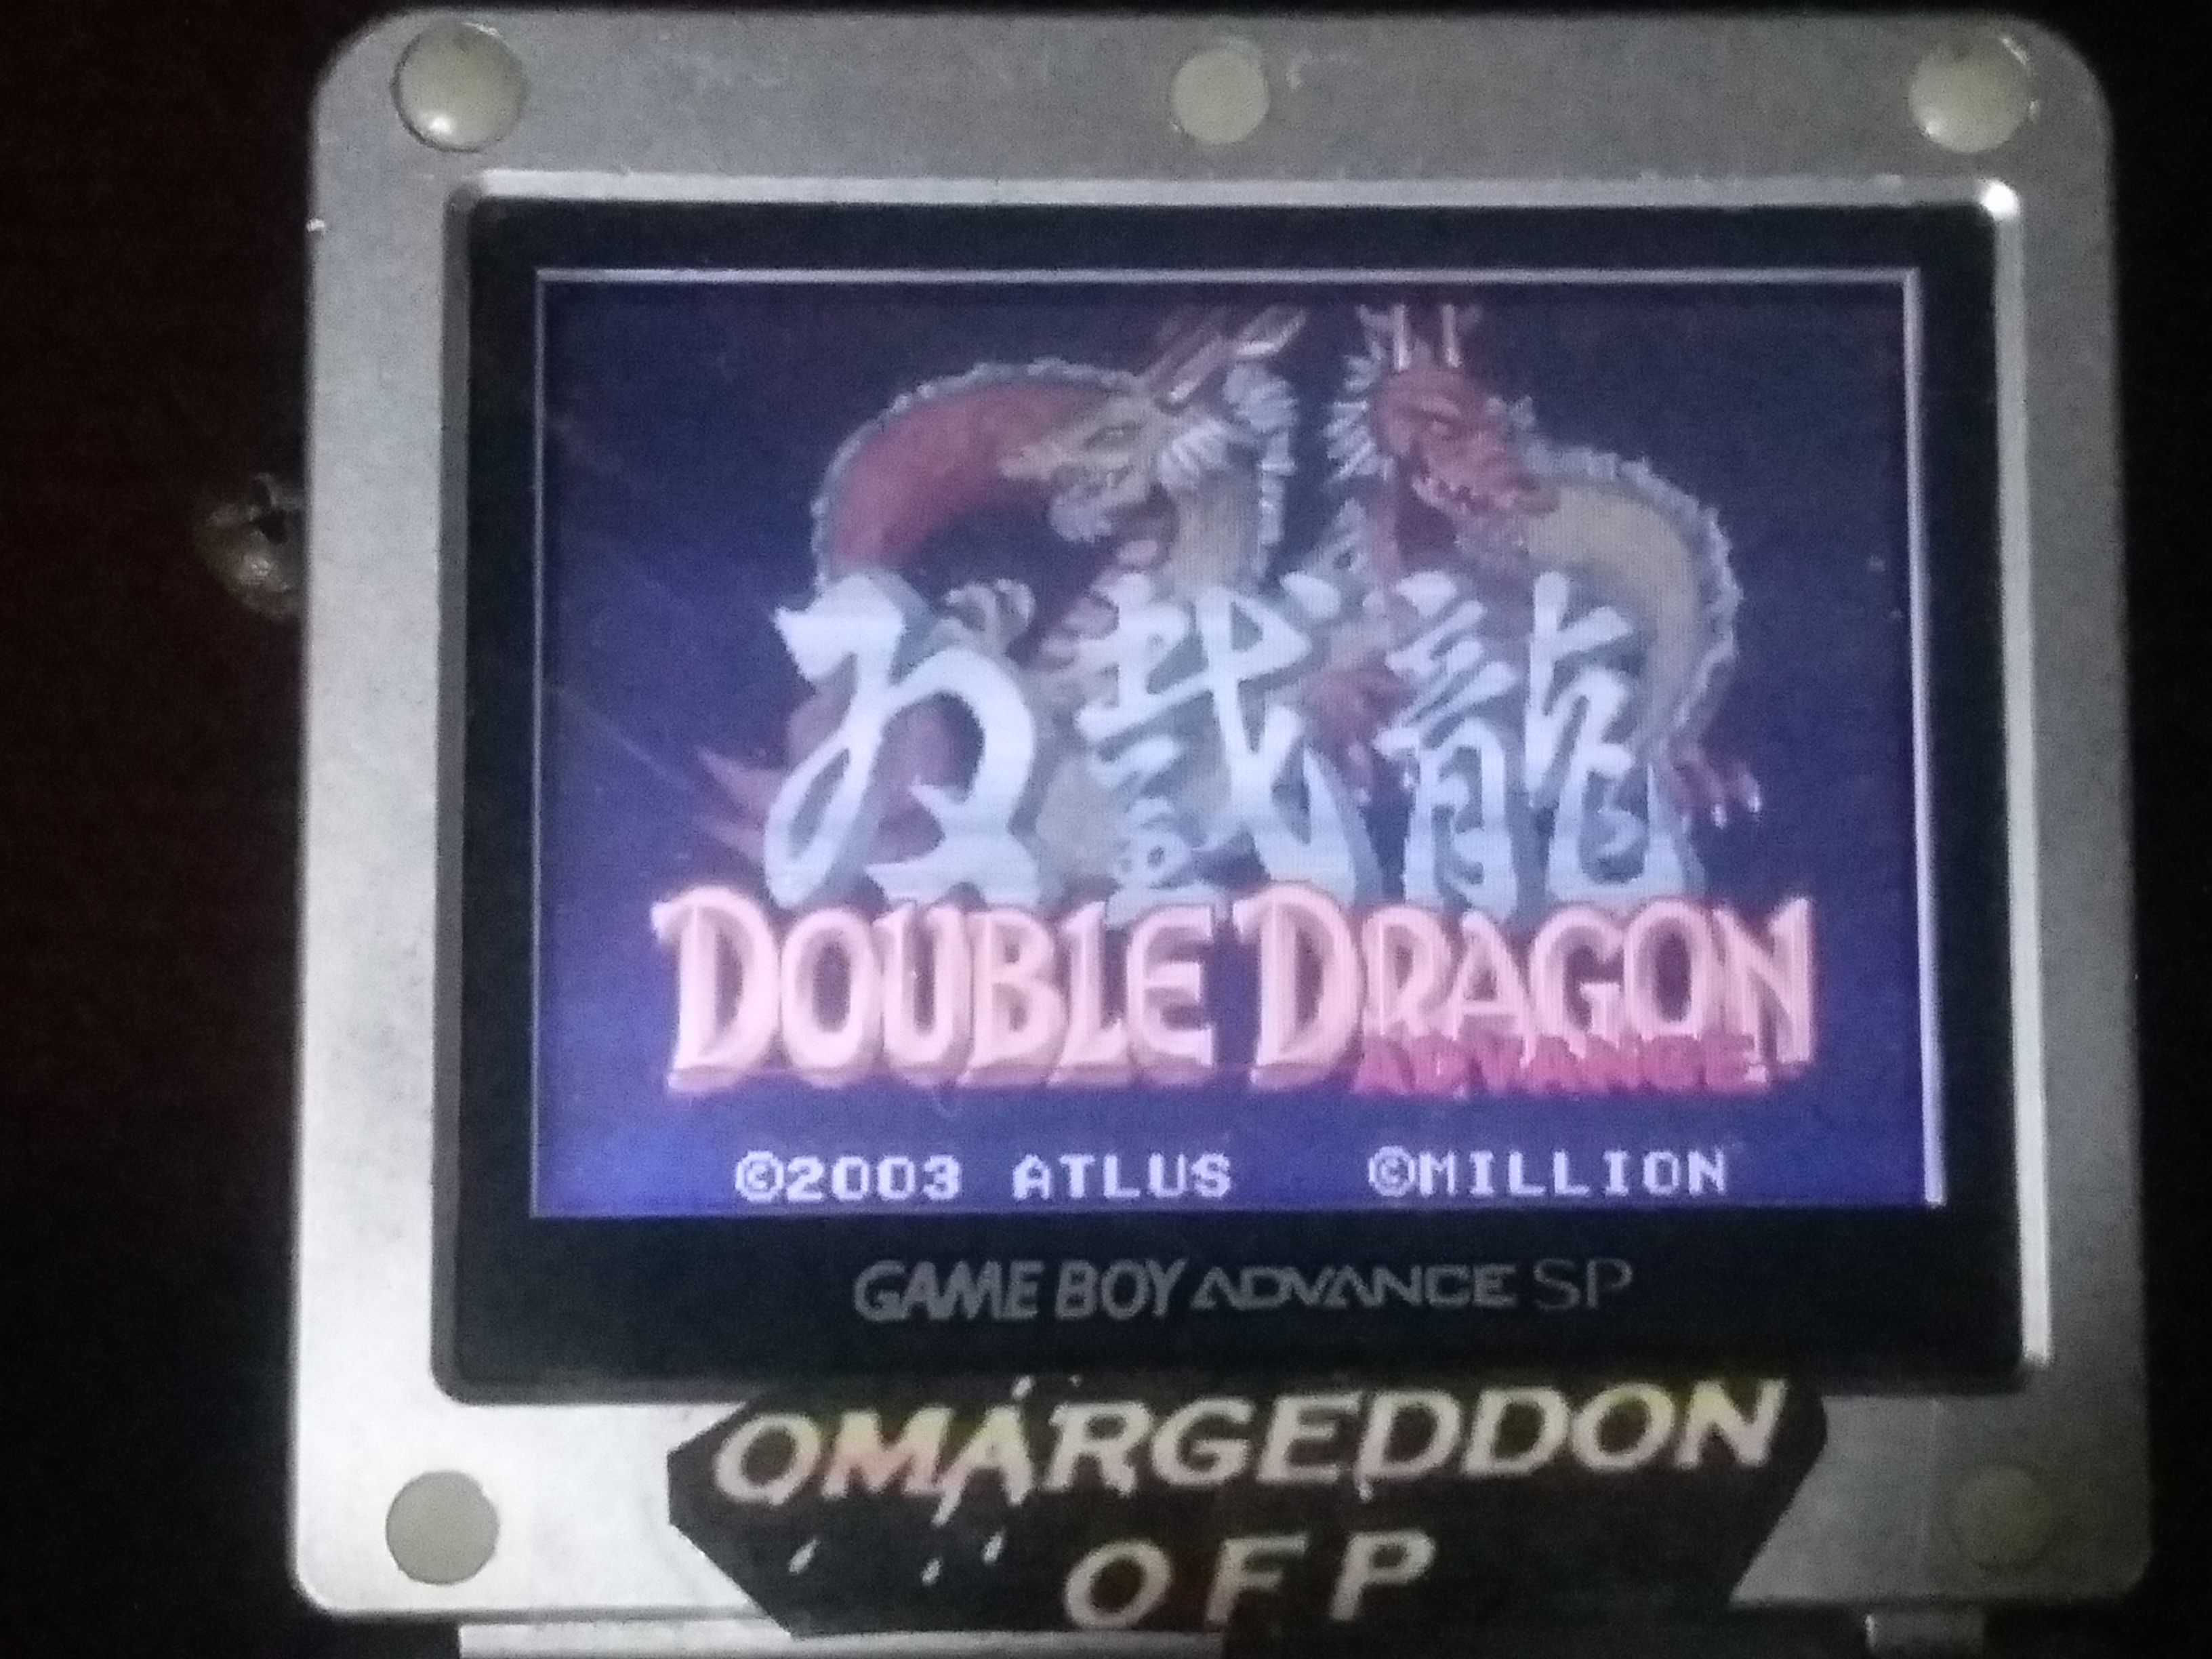 omargeddon: Double Dragon Advance (GBA) 84,100 points on 2018-01-17 17:59:15